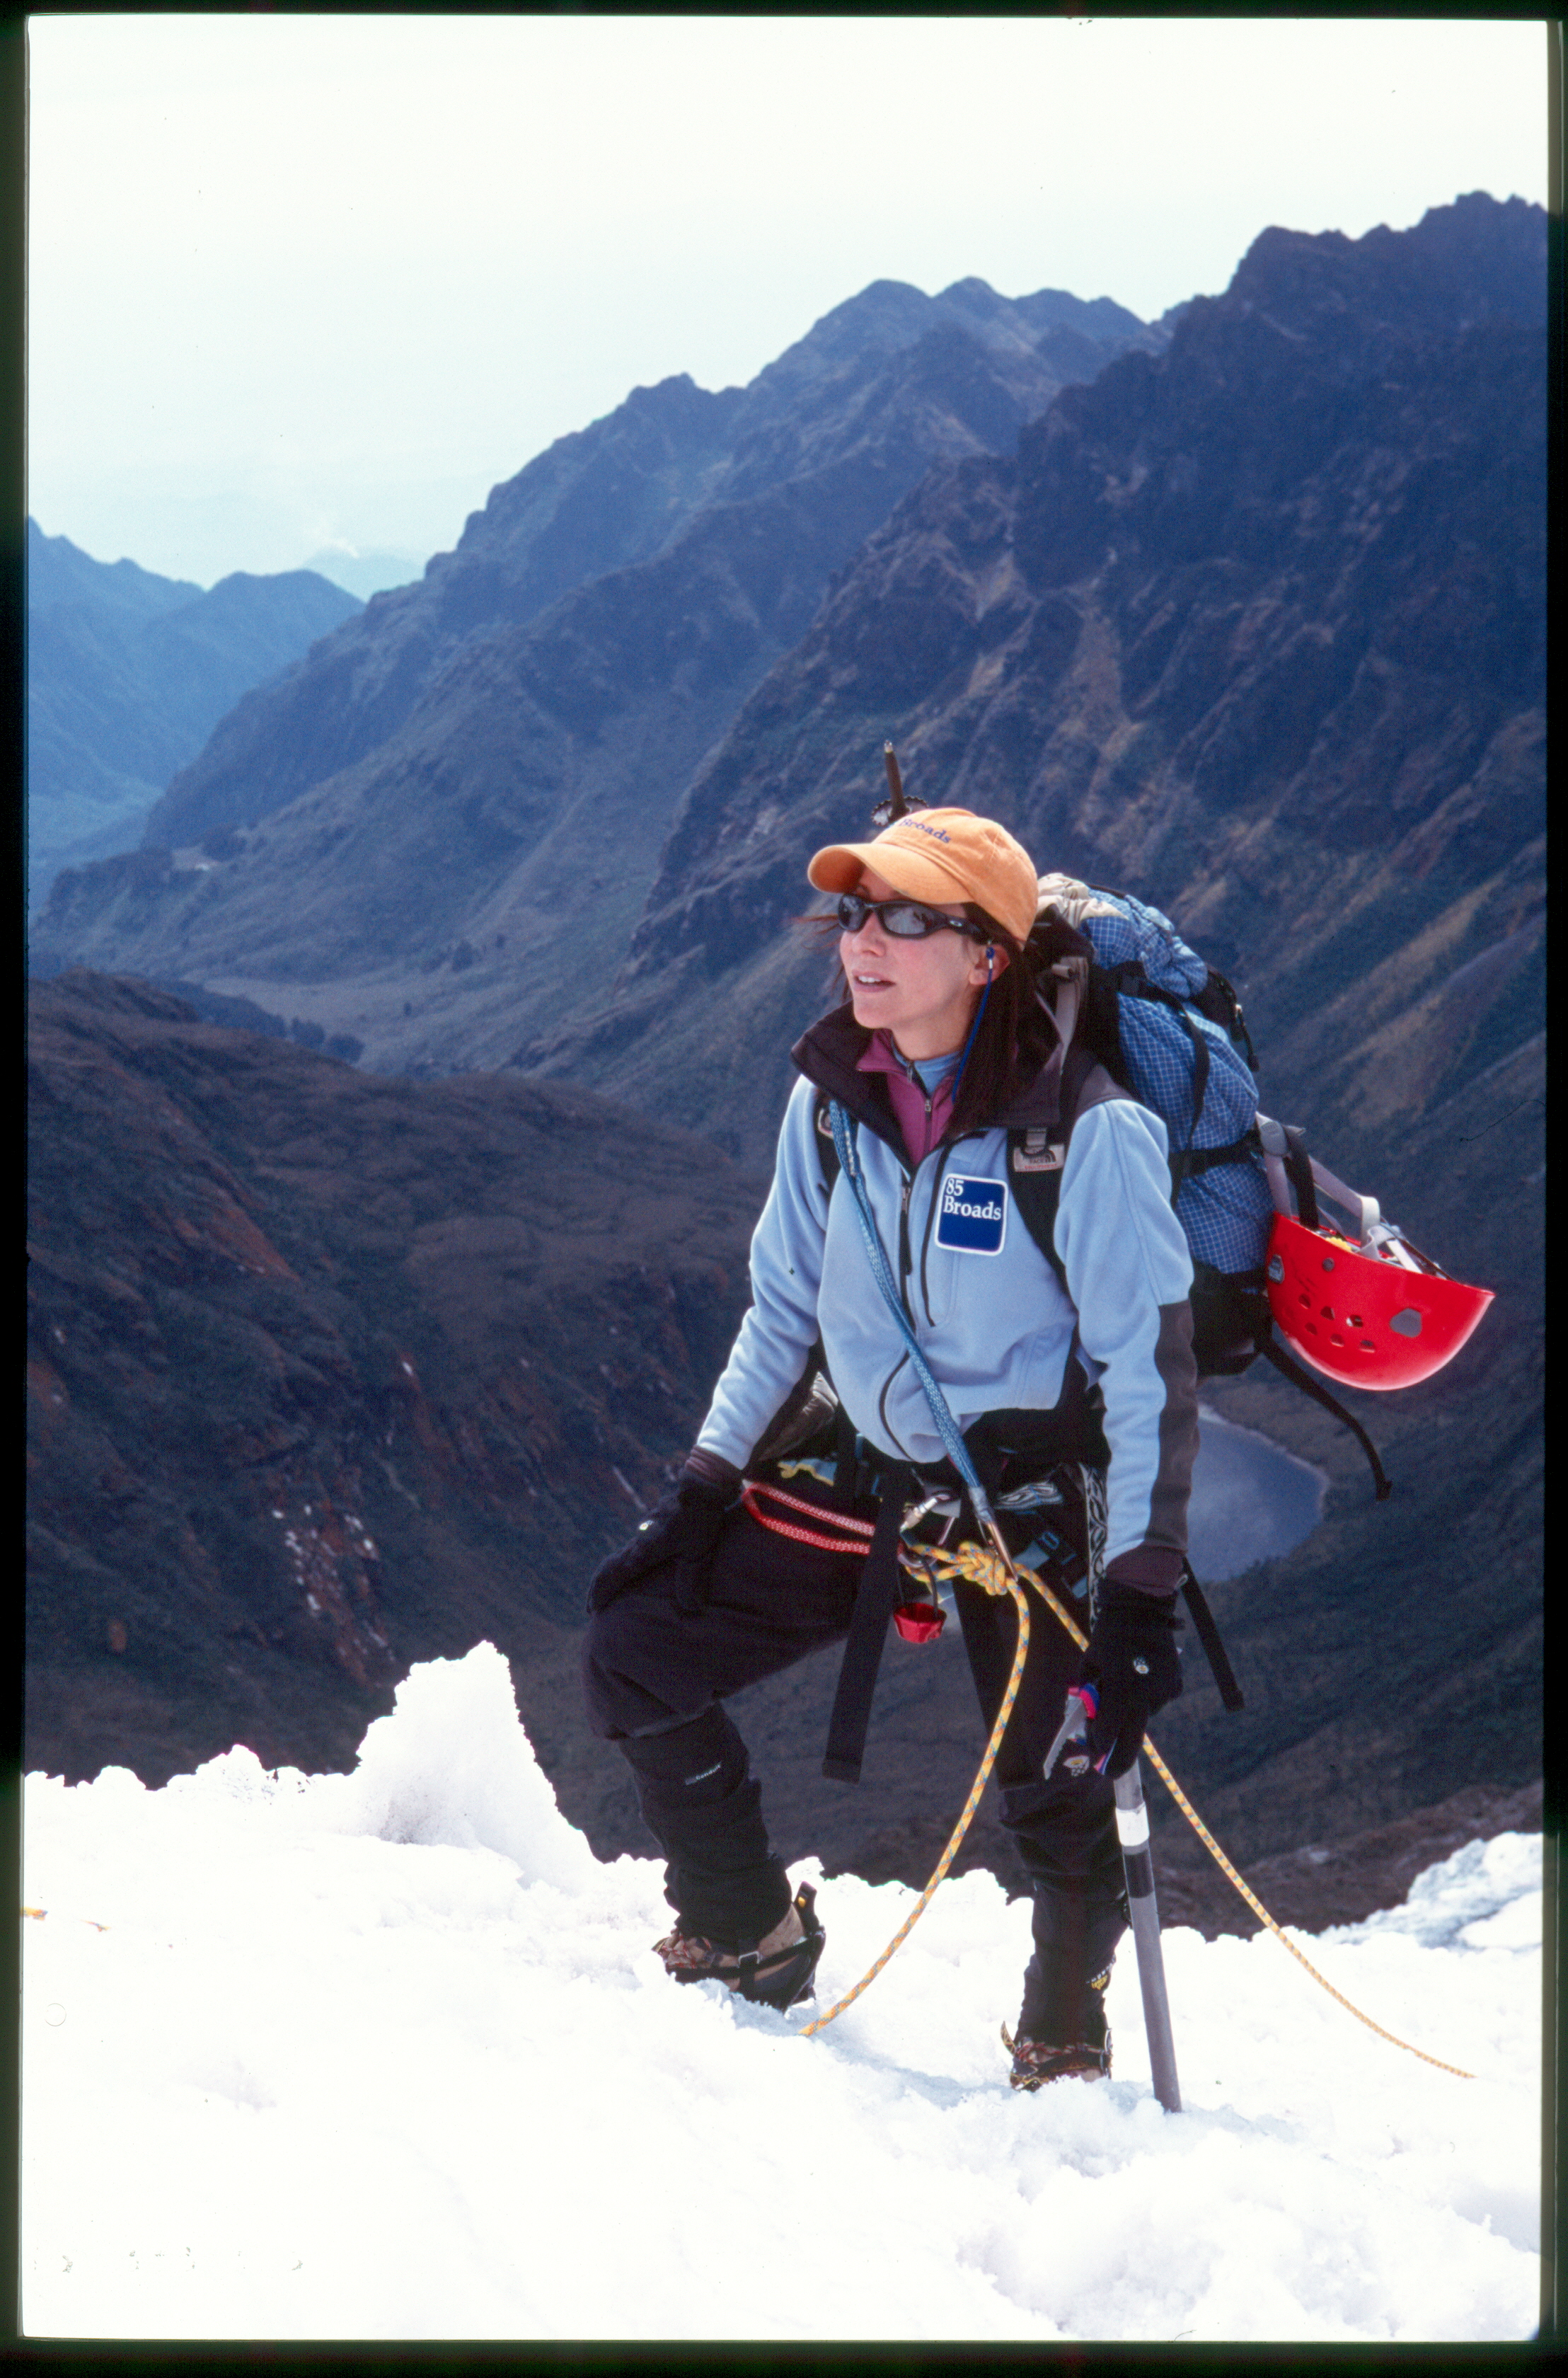 Alison Levine on Mt. Everest